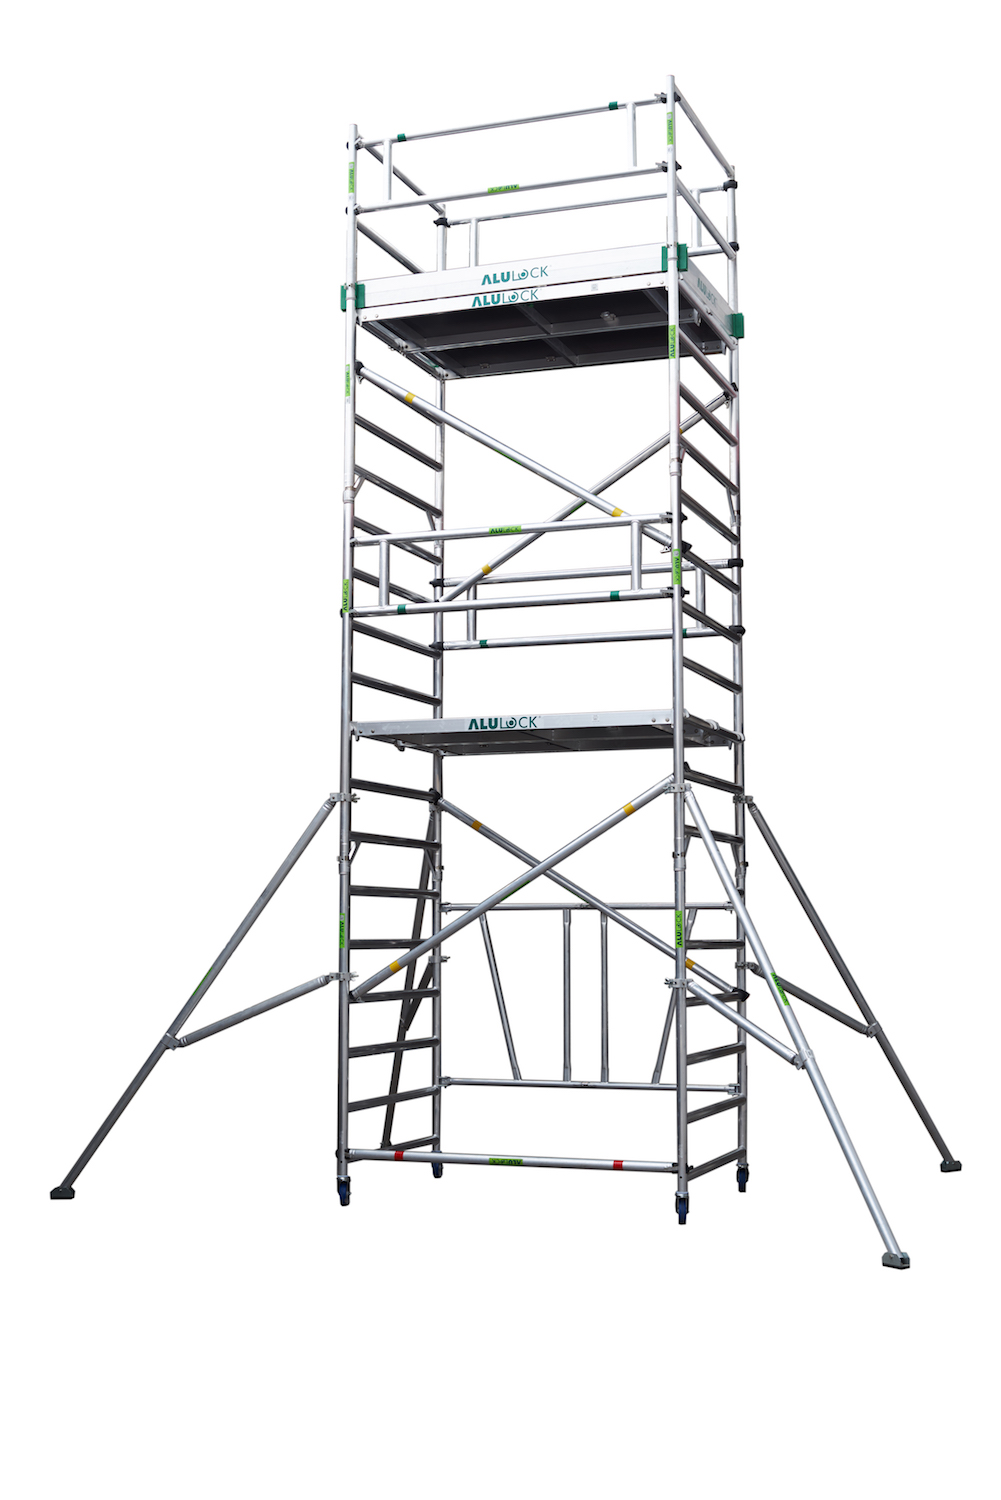 Folding Scaffold 135 x 180 cm. Working height: 6.65 m.